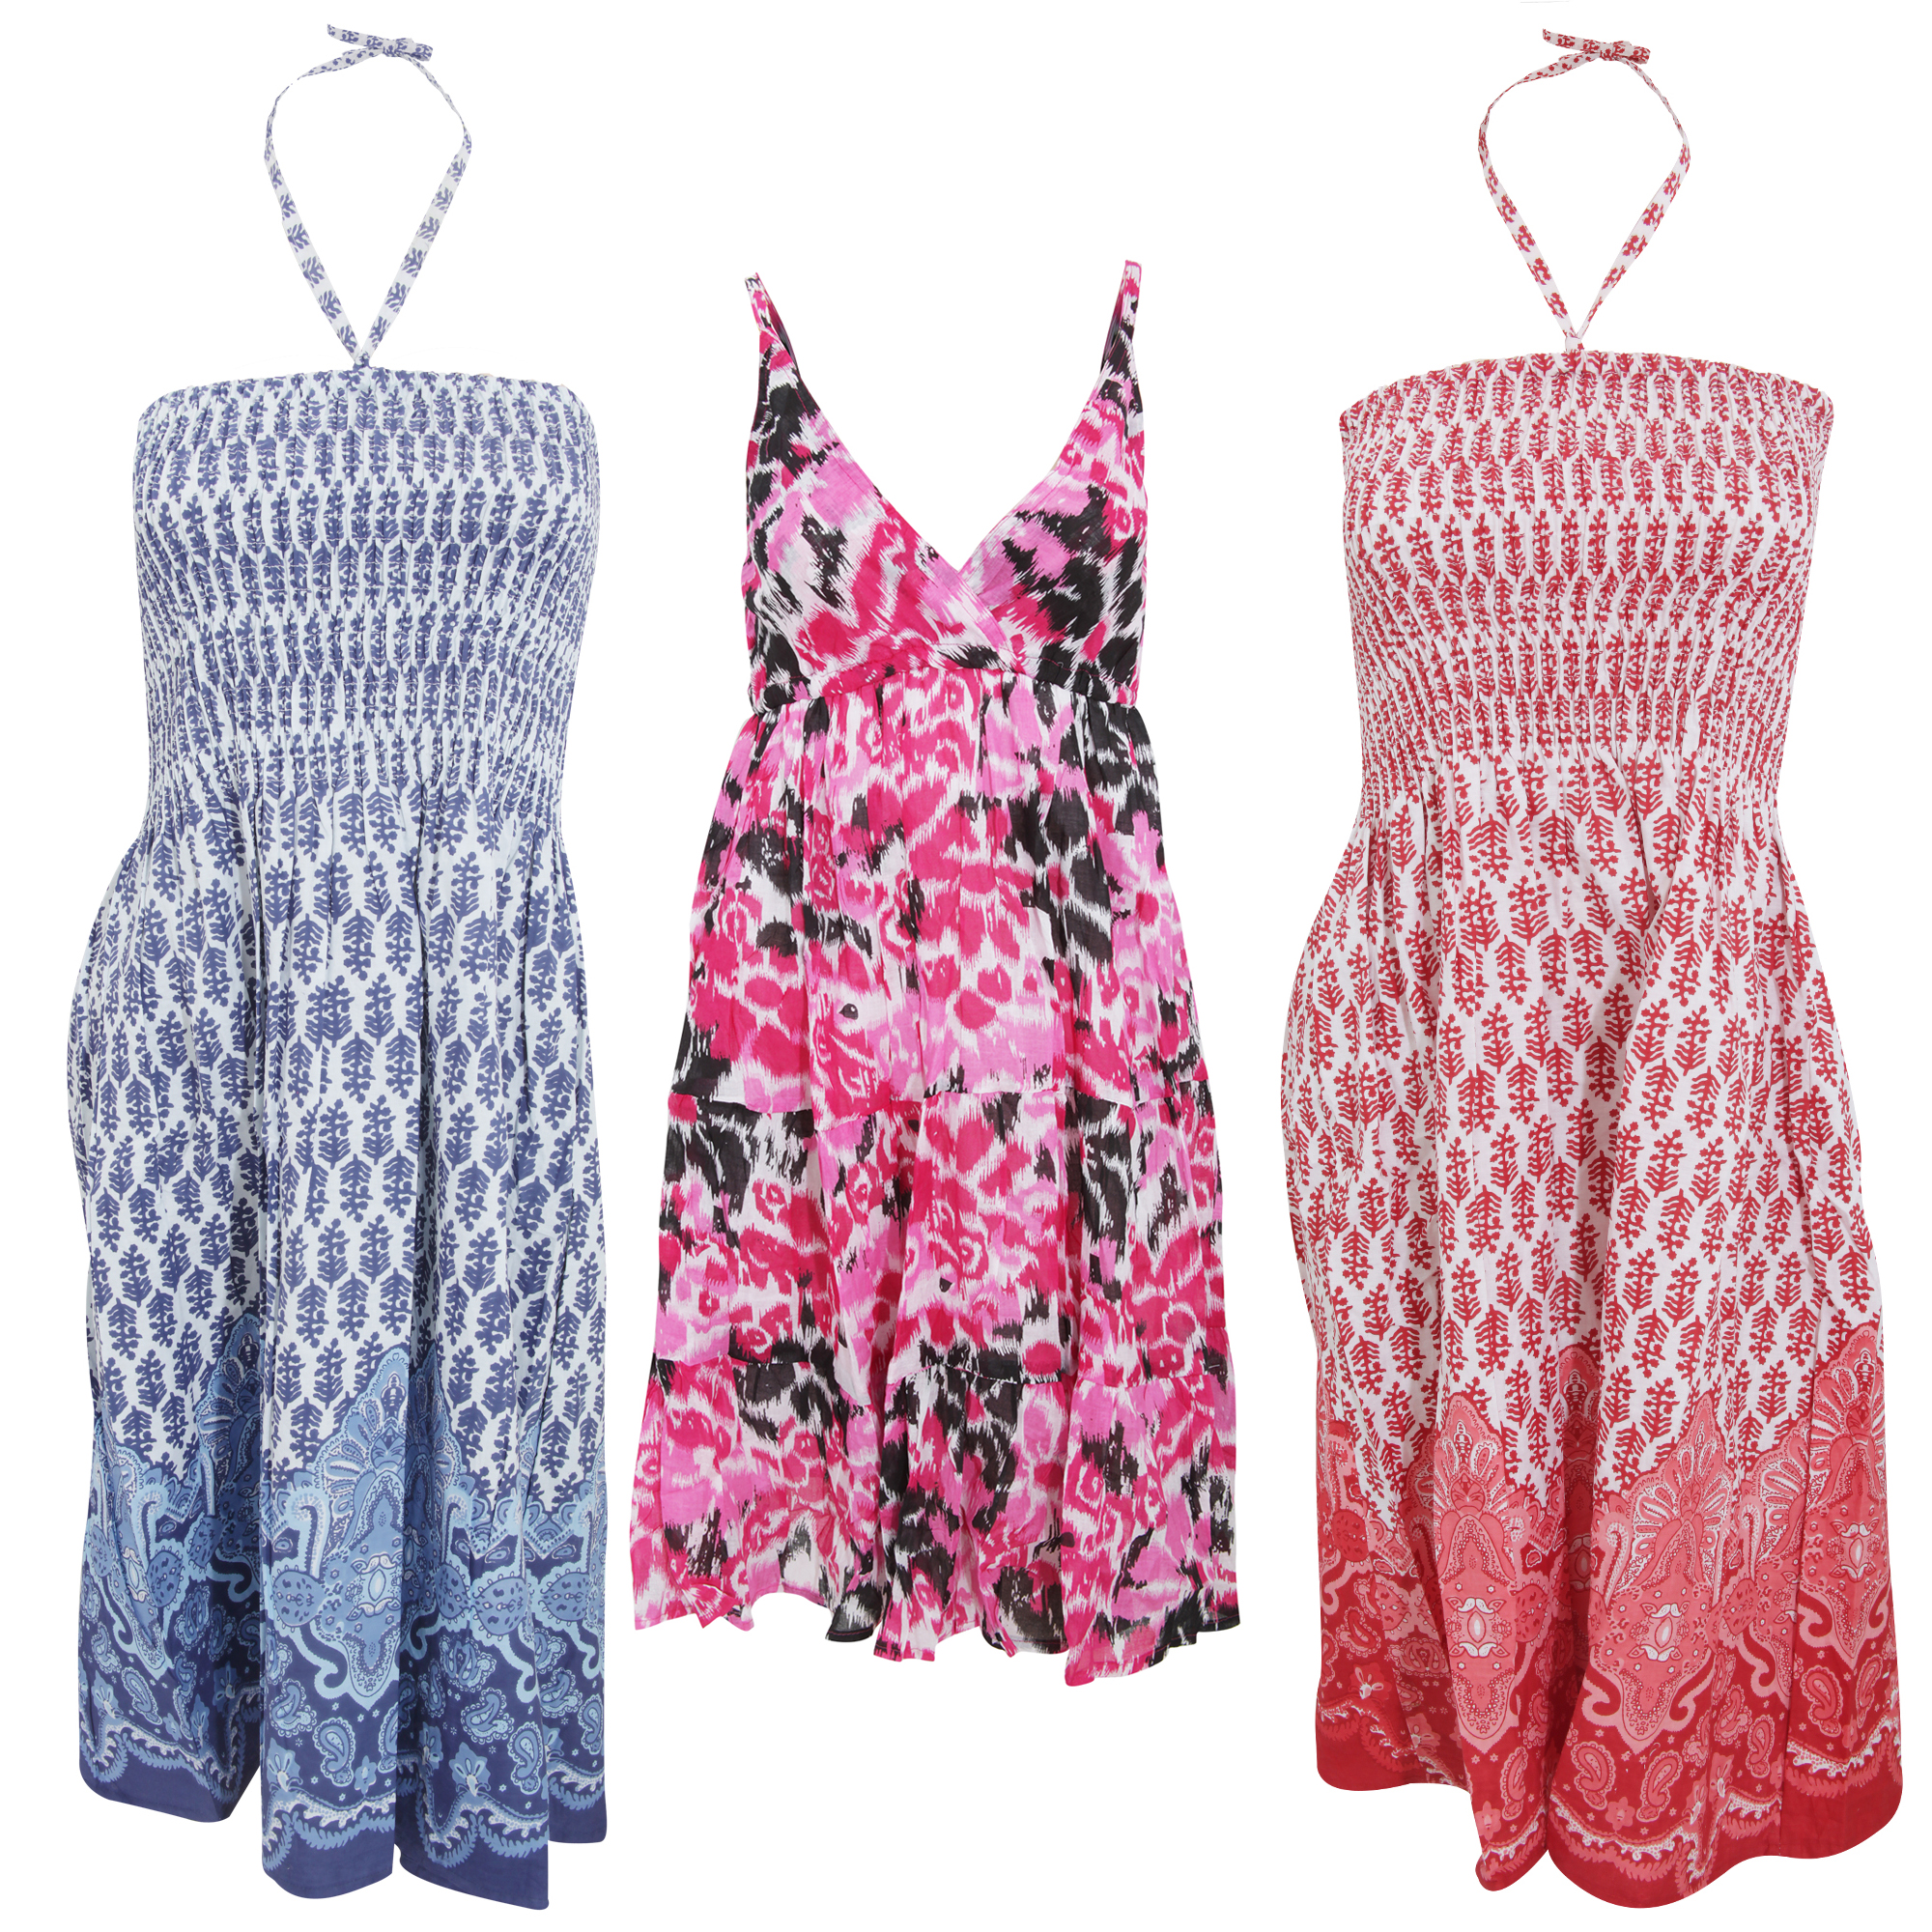 Bulk, Wholesale, Job Lot, Clearance Assorted Clothing (Dresses, Tops, Footwear And More) (Box 16) (Assorted Womens Summer Dresses (Set of 56))